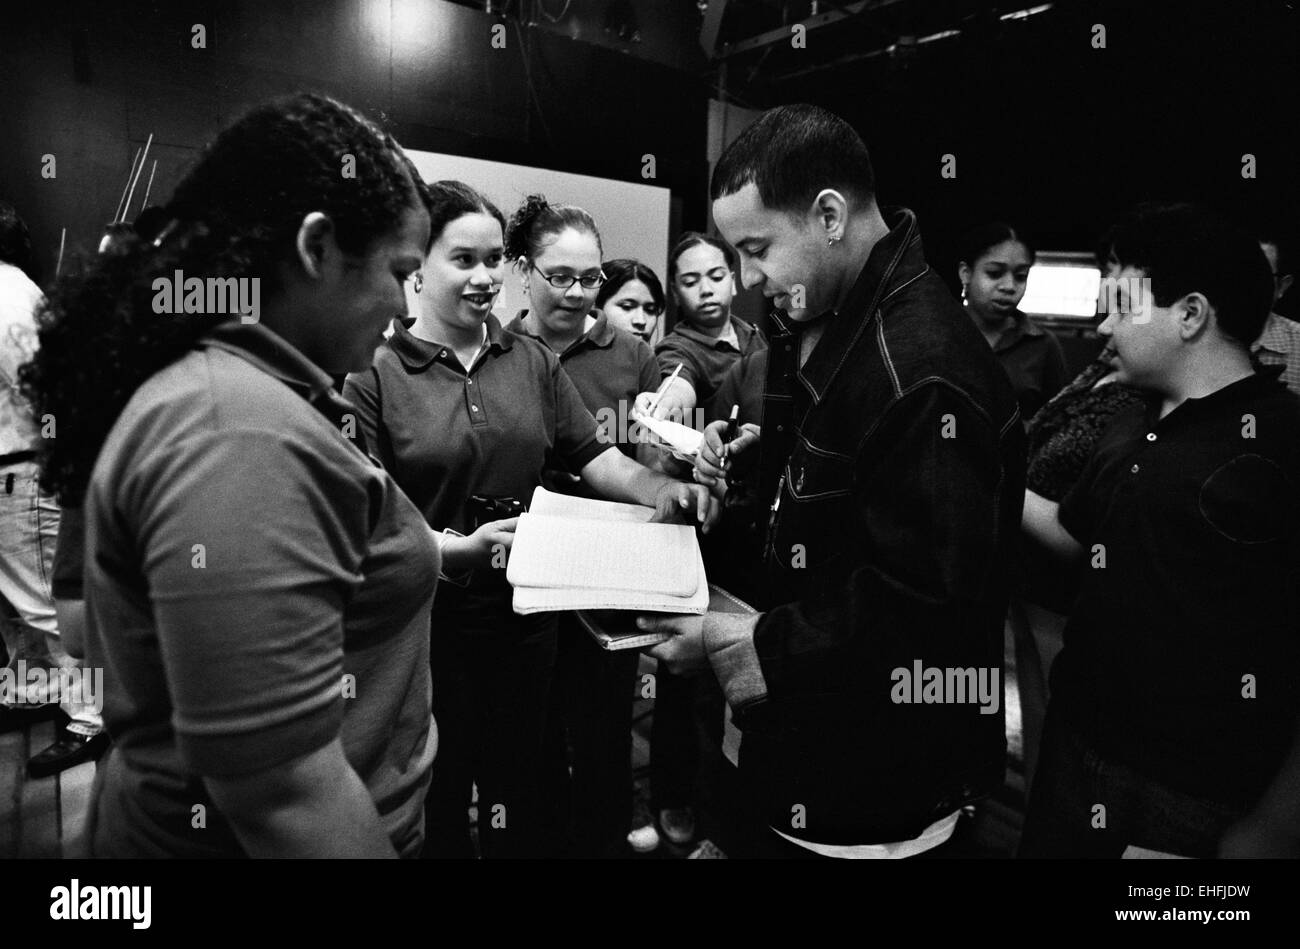 Daddy Yankee signing autographs after a TV appearance in Puerto Rico. - Stock Image